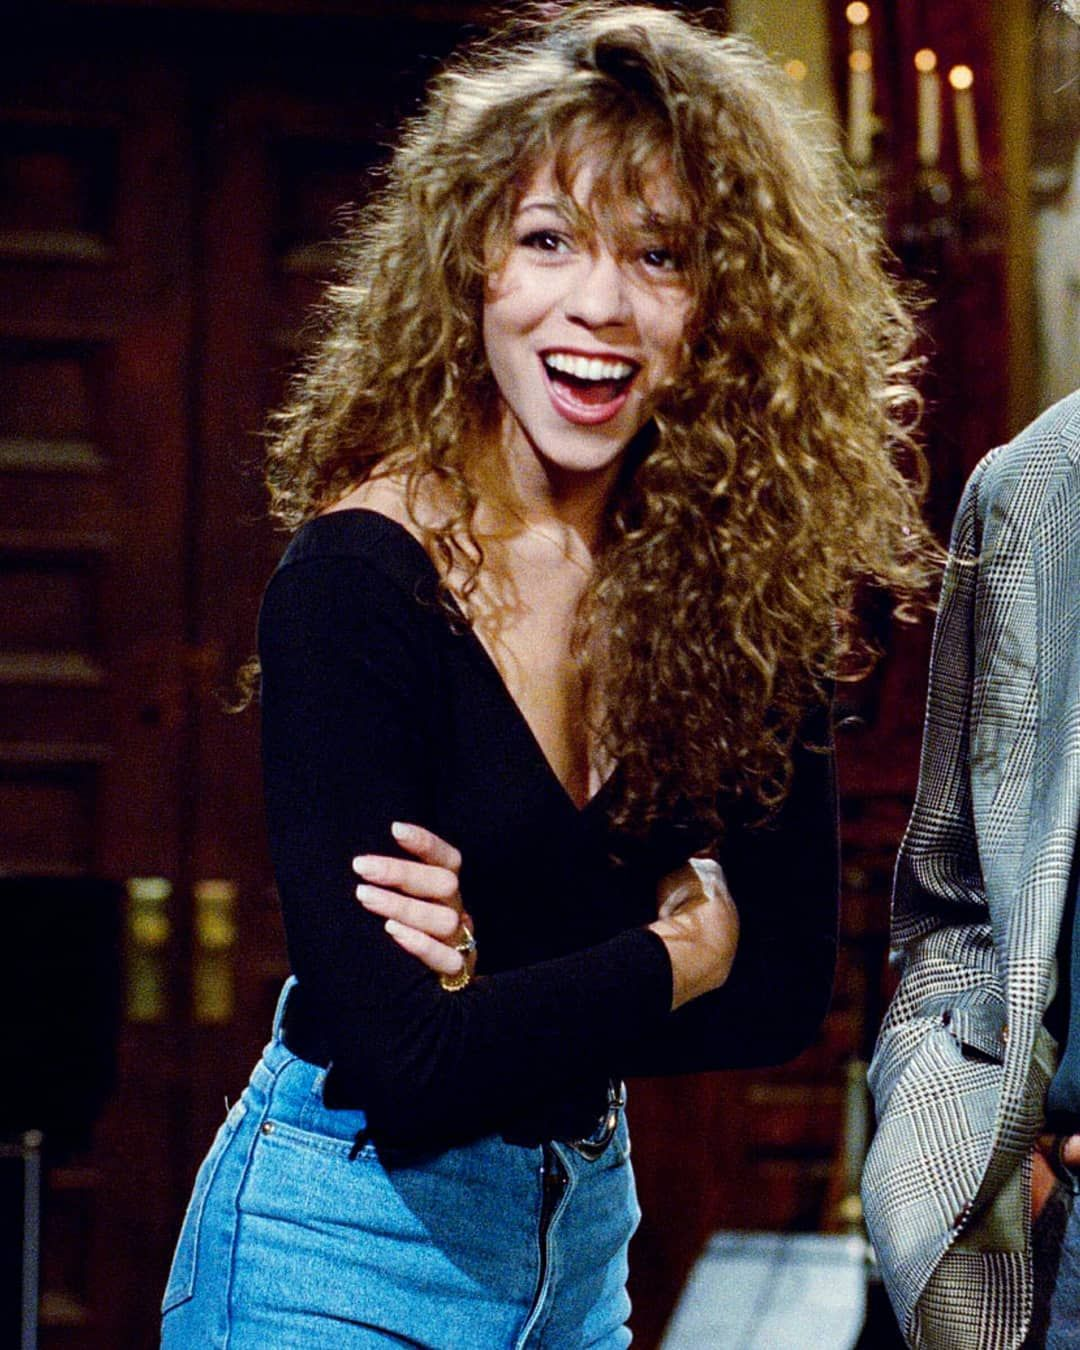 Mariah Carey Long Haircut 3bhair 3b 3bcurls Curly Curlinspo Curlinspiration Curlyhaircut Curlyhair Curly Hair Photos Curly Hair Styles Hair Styles